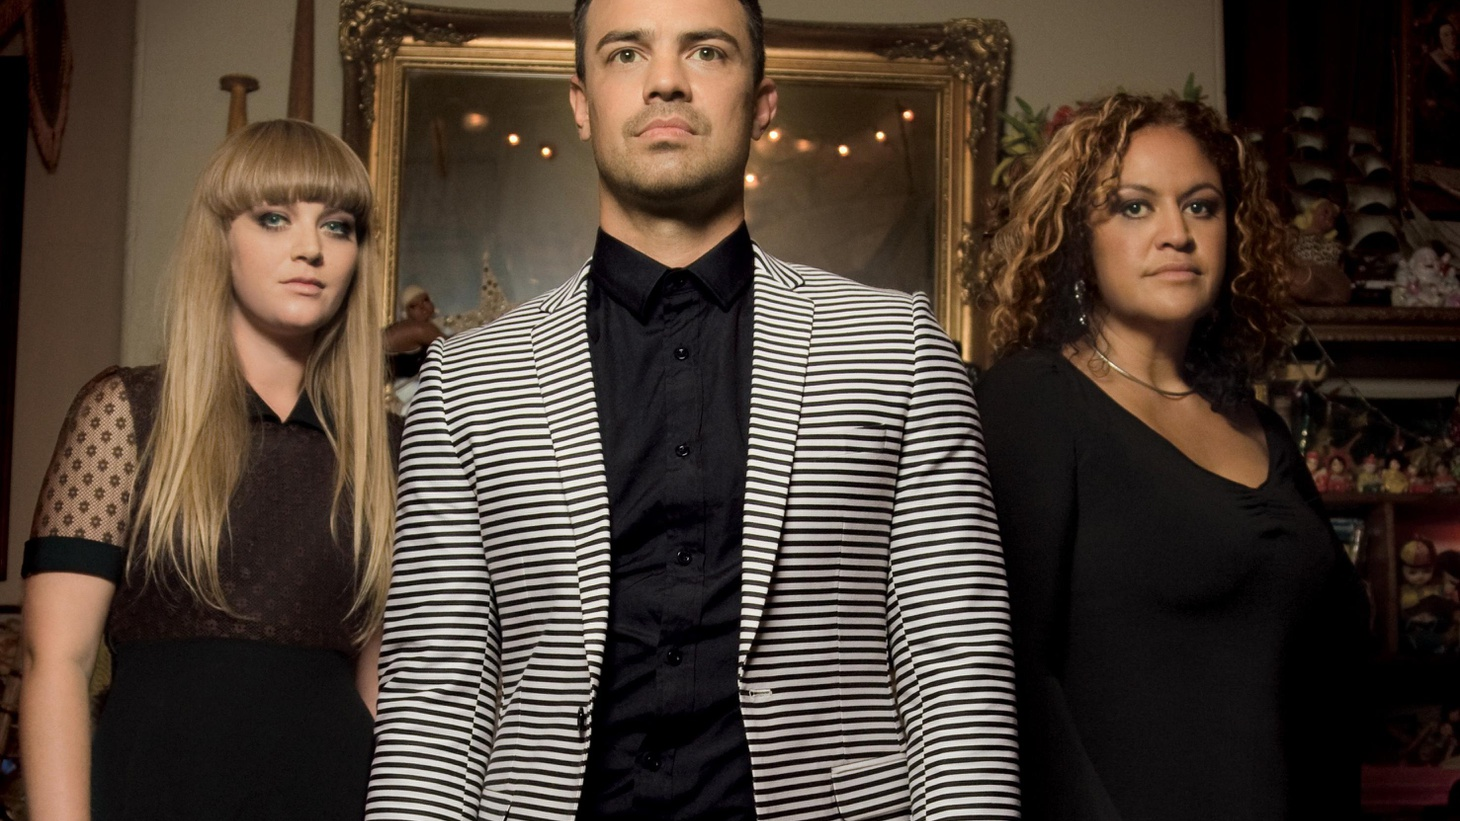 Australian funk/soul band The Bamboos are joined by a slew of great singers on their fifth full-length, including Aloe Blacc, Daniel Merriweather and...